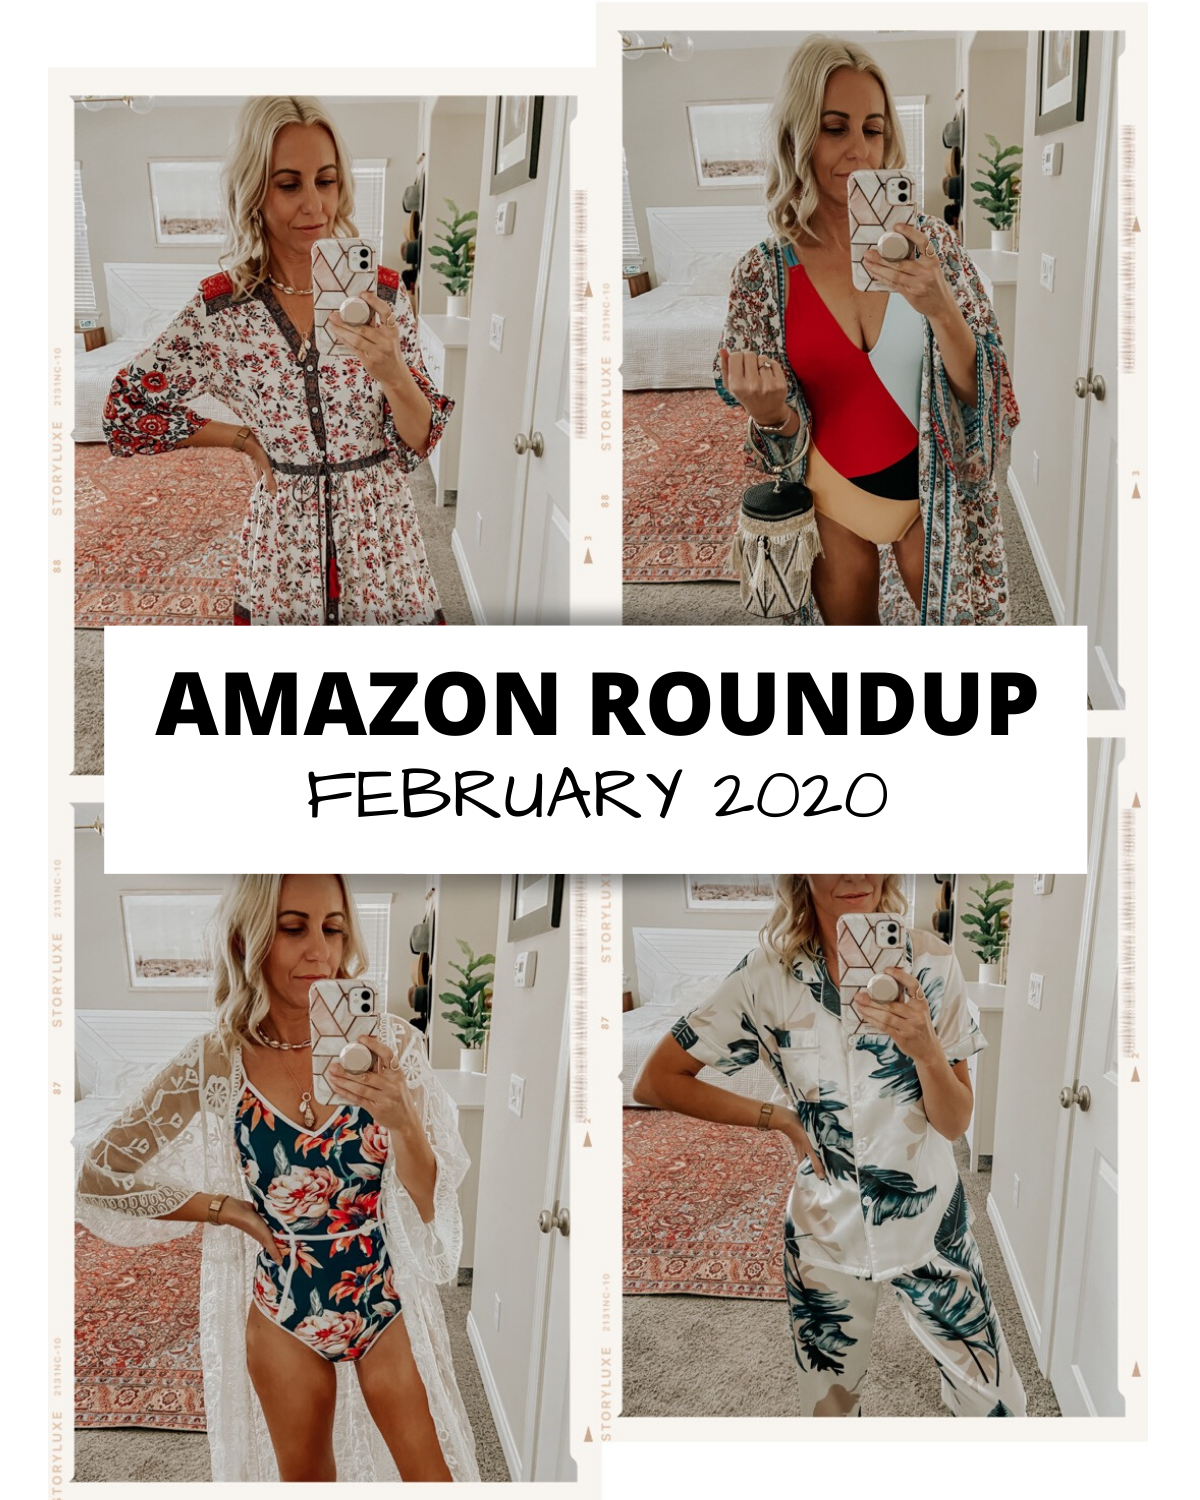 AMAZON ROUNDUP- FEBRUARY 2020- Jaclyn De Leon Style+ Sharing all my favorite Amazon finds from the month of February. Tons of cute spring break looks including swimwear, kimonos, dresses and more.